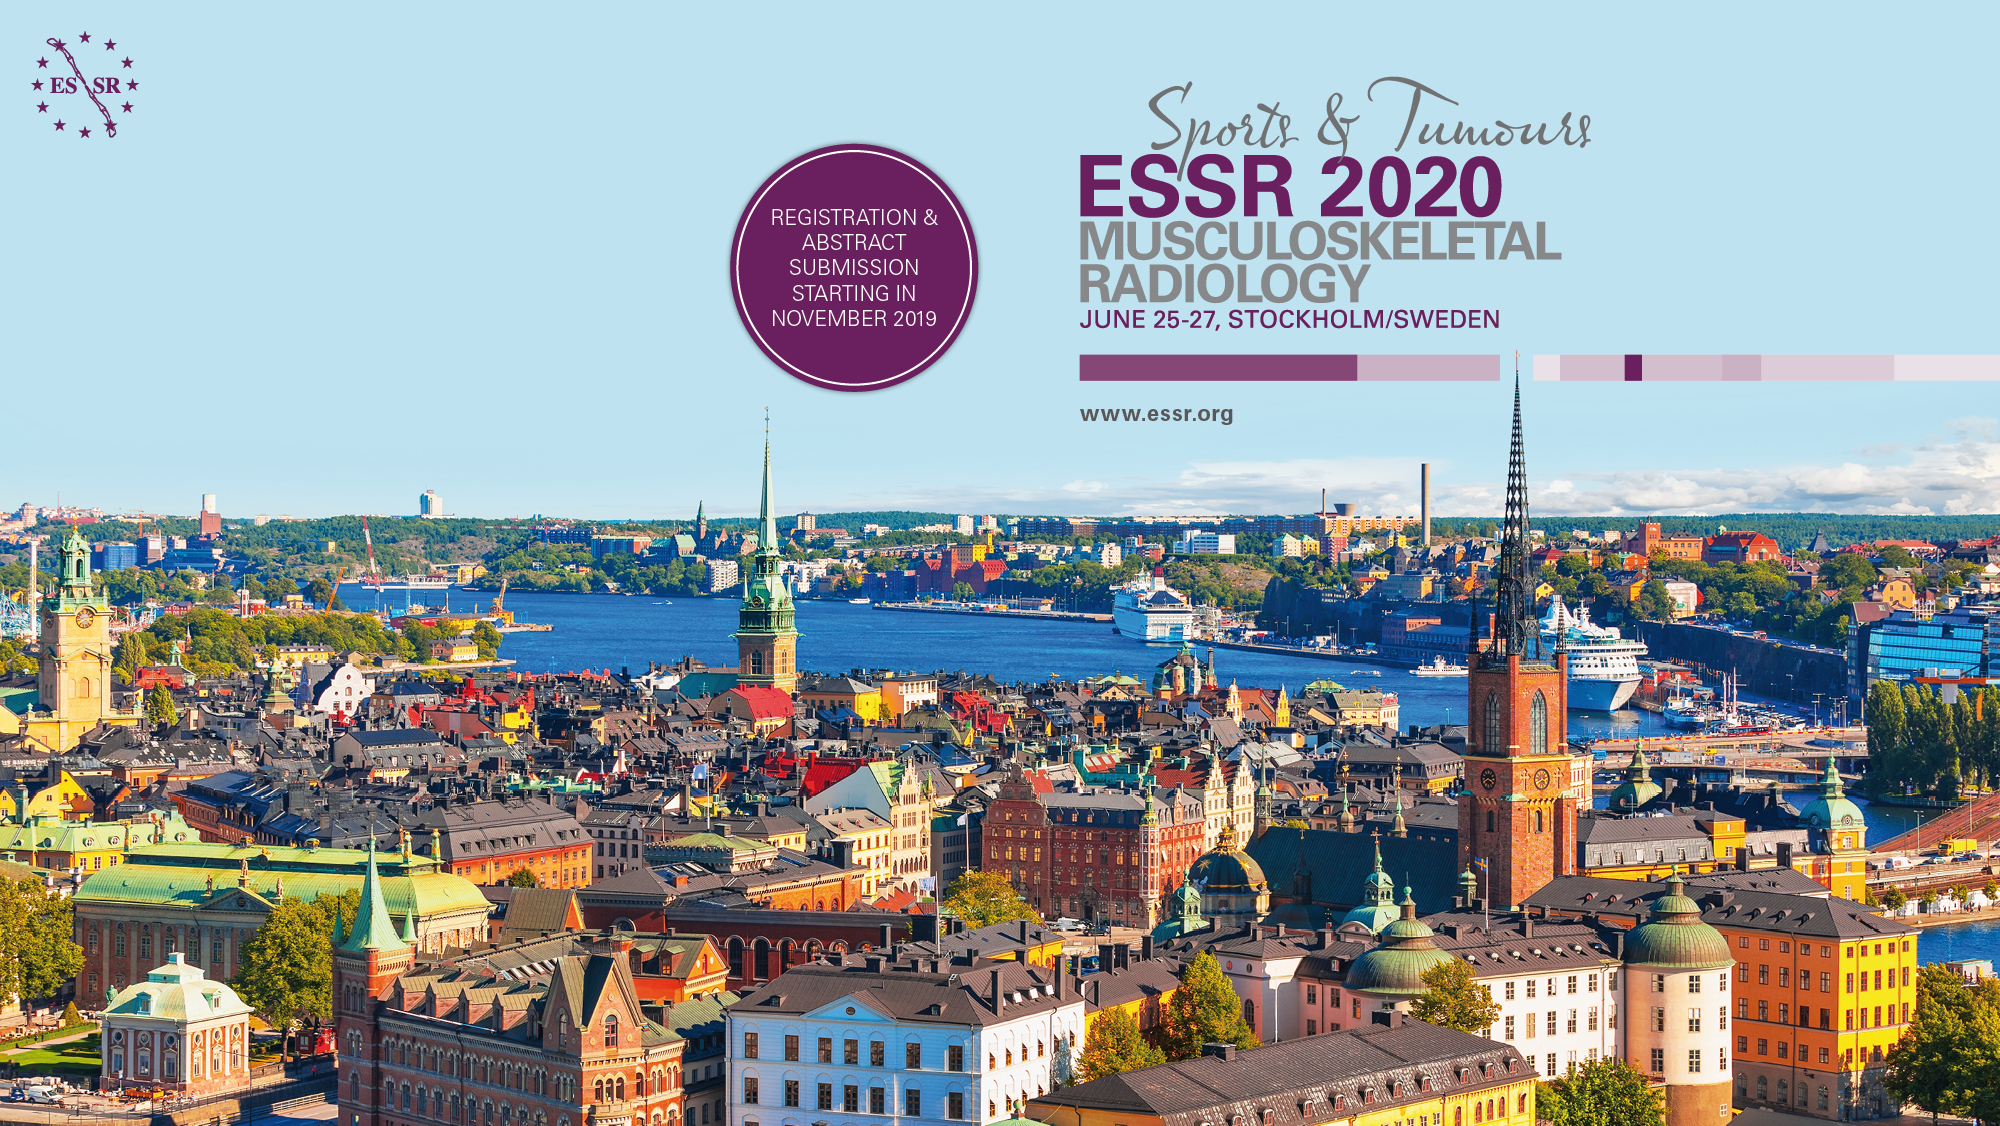 Home - European Society of Musculoskeletal Radiology